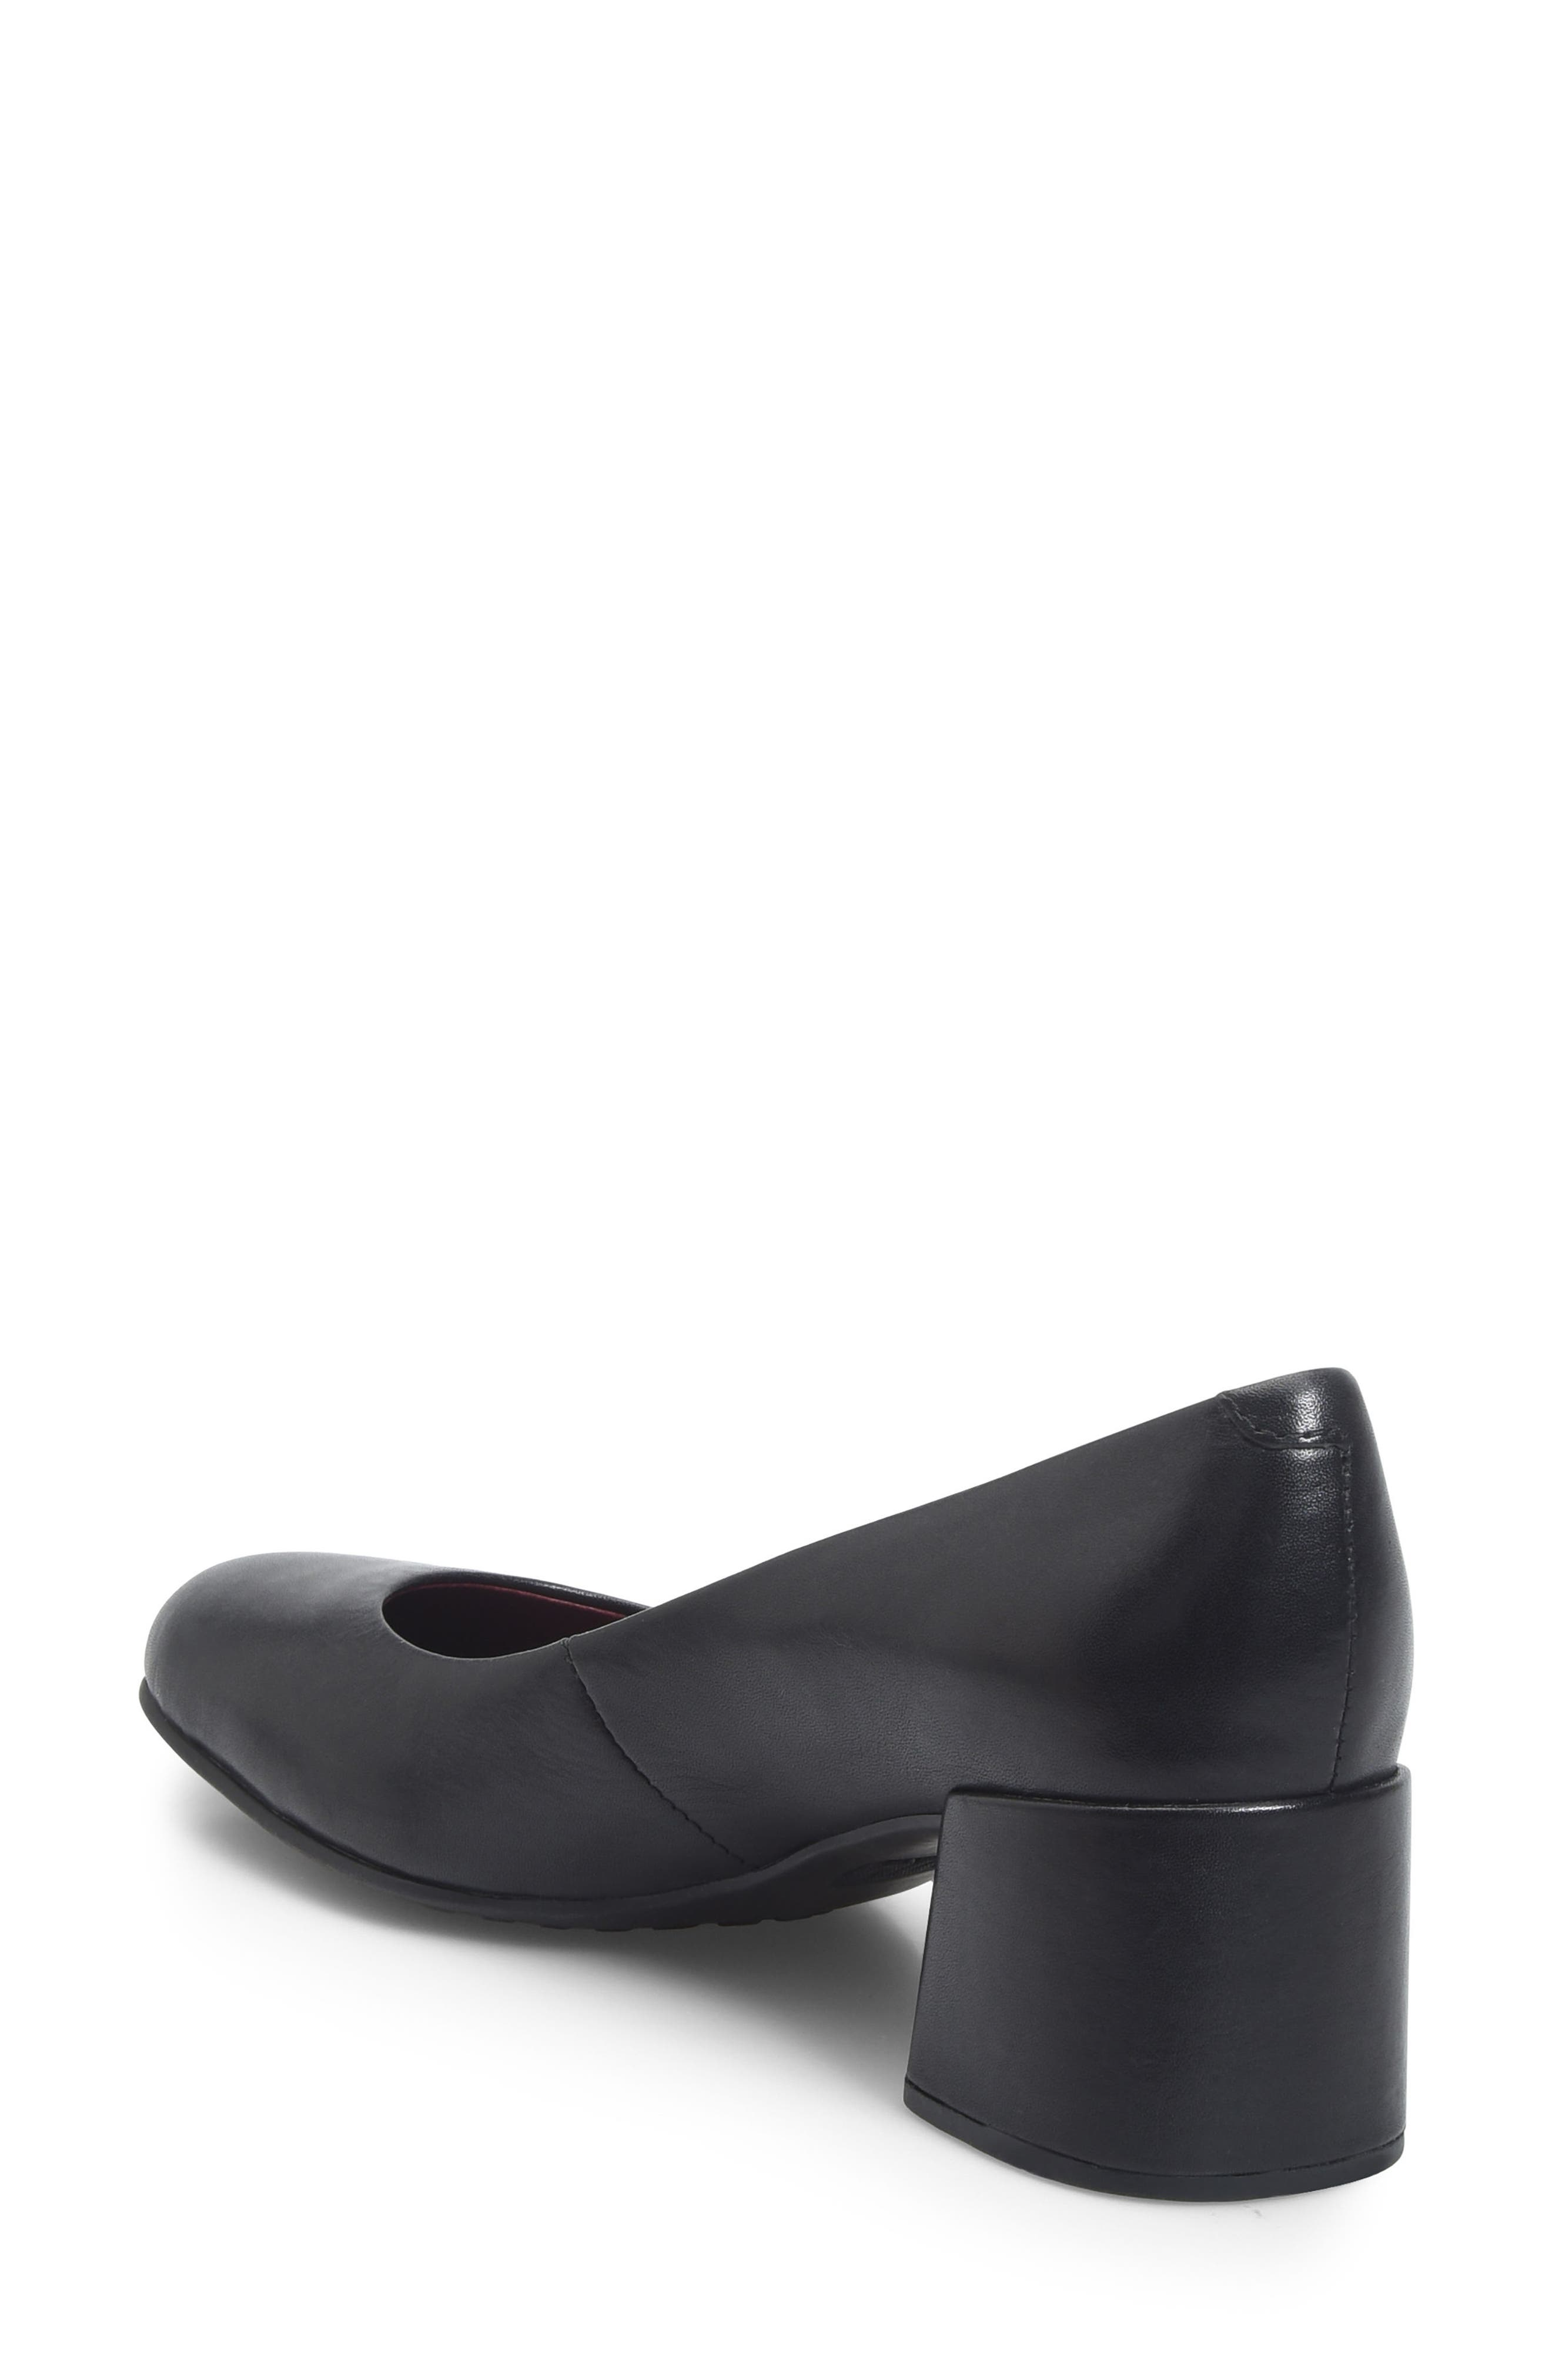 Magnolia Block Heel Pump,                             Alternate thumbnail 2, color,                             BLACK LEATHER